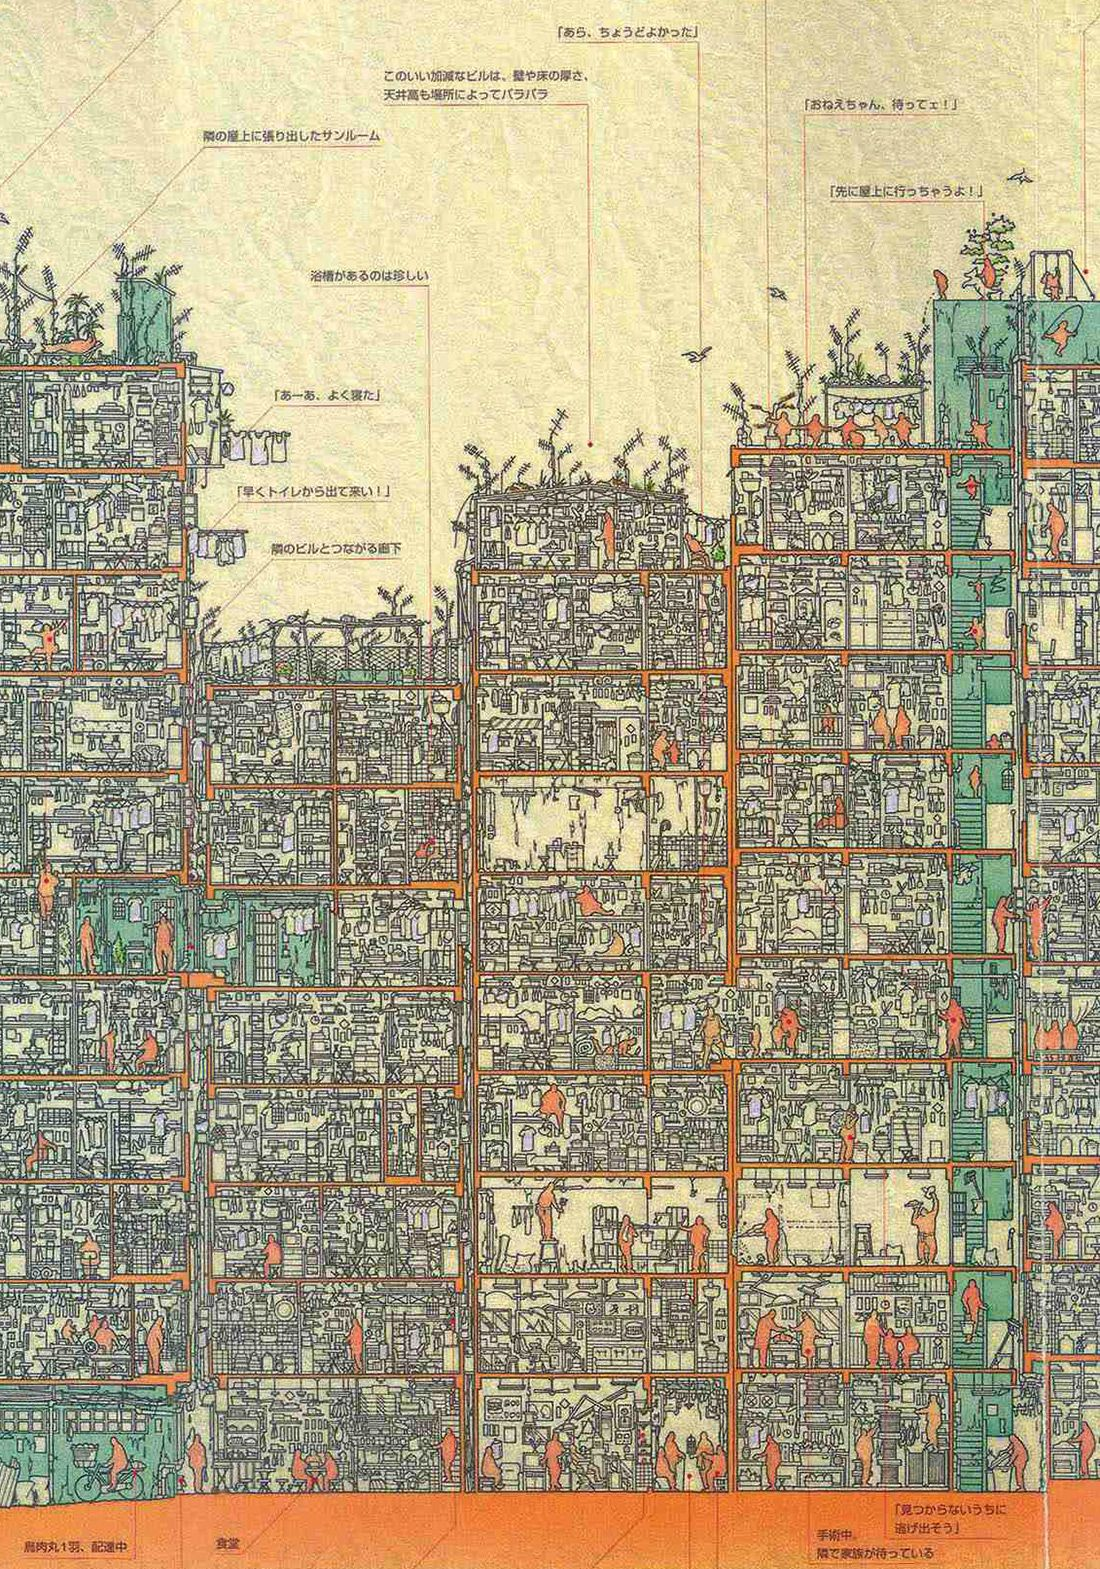 An Illustrated Cross Section of Hong Kong's Infamous Kowloon Walled